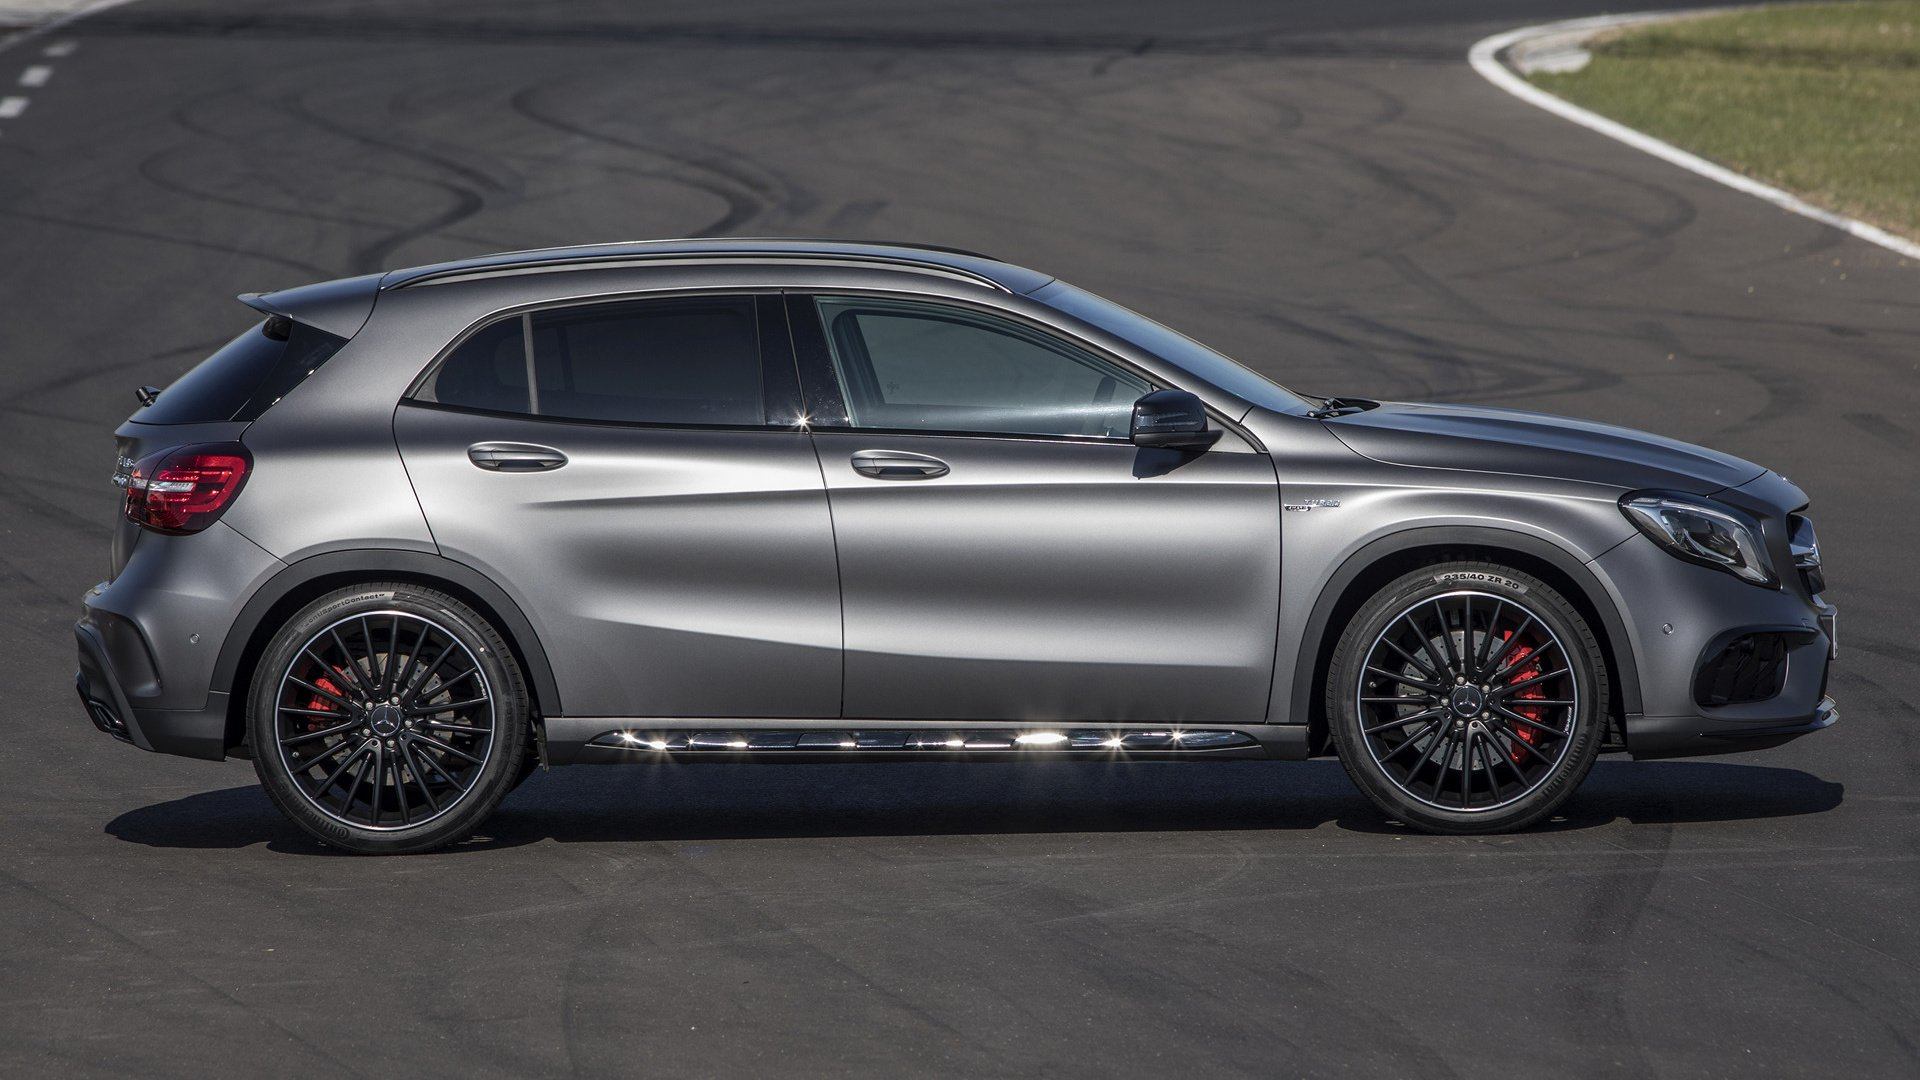 75 mercedes benz gla class hd wallpapers background images hd wallpaper background image id882381 voltagebd Image collections